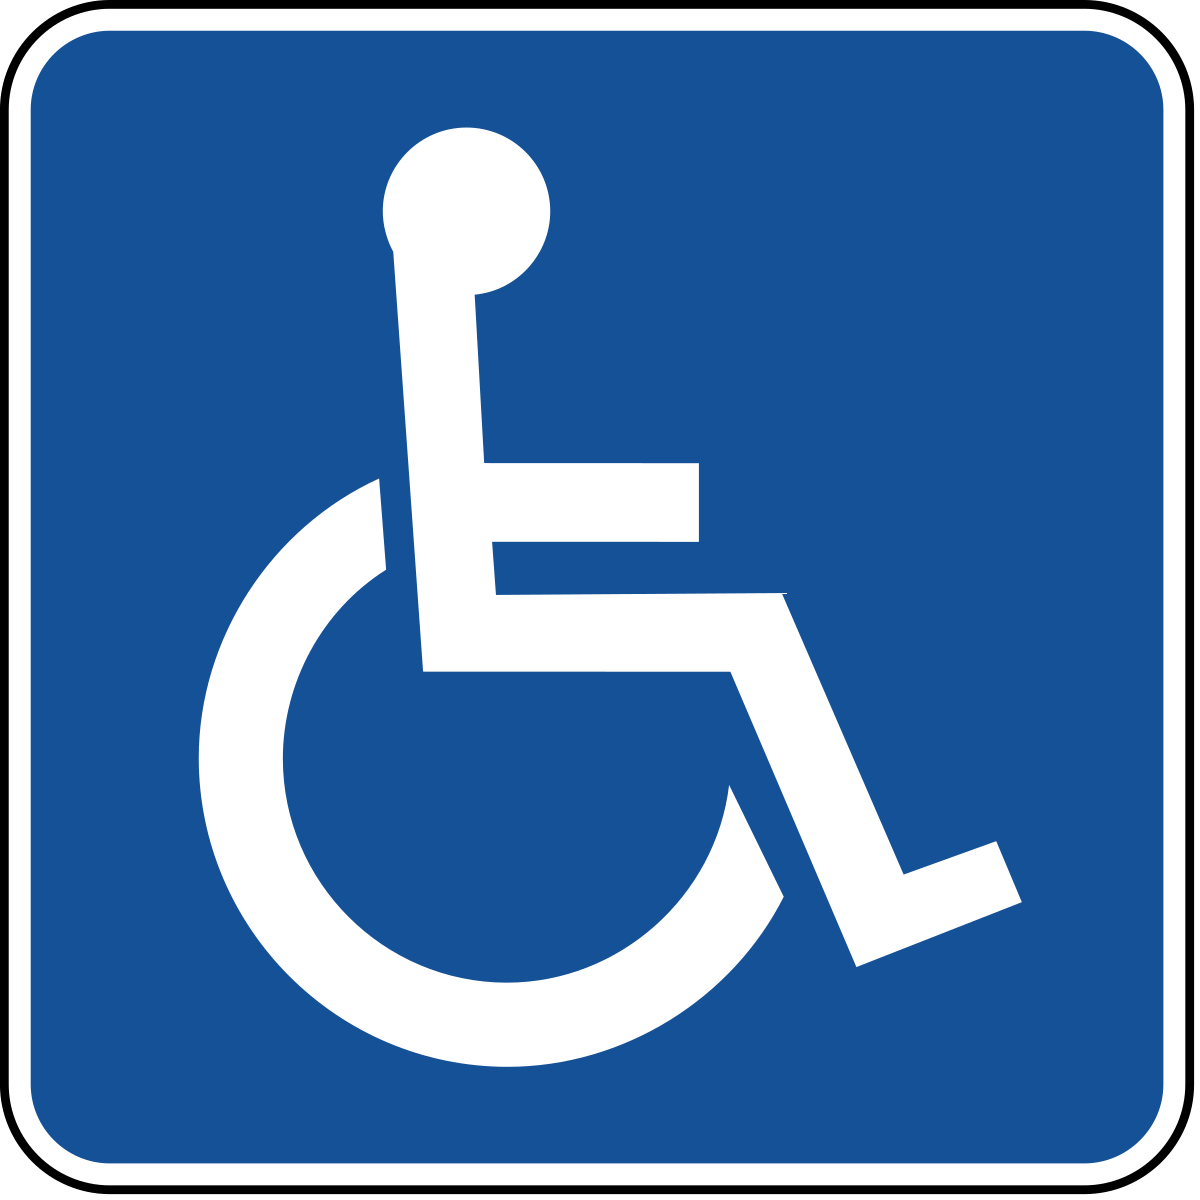 """YYC APOLOGIZES FOR """"LEXUS ONLY"""" PARKING SPOTS AFTER DISABLED SPOTS WERE REMOVED"""